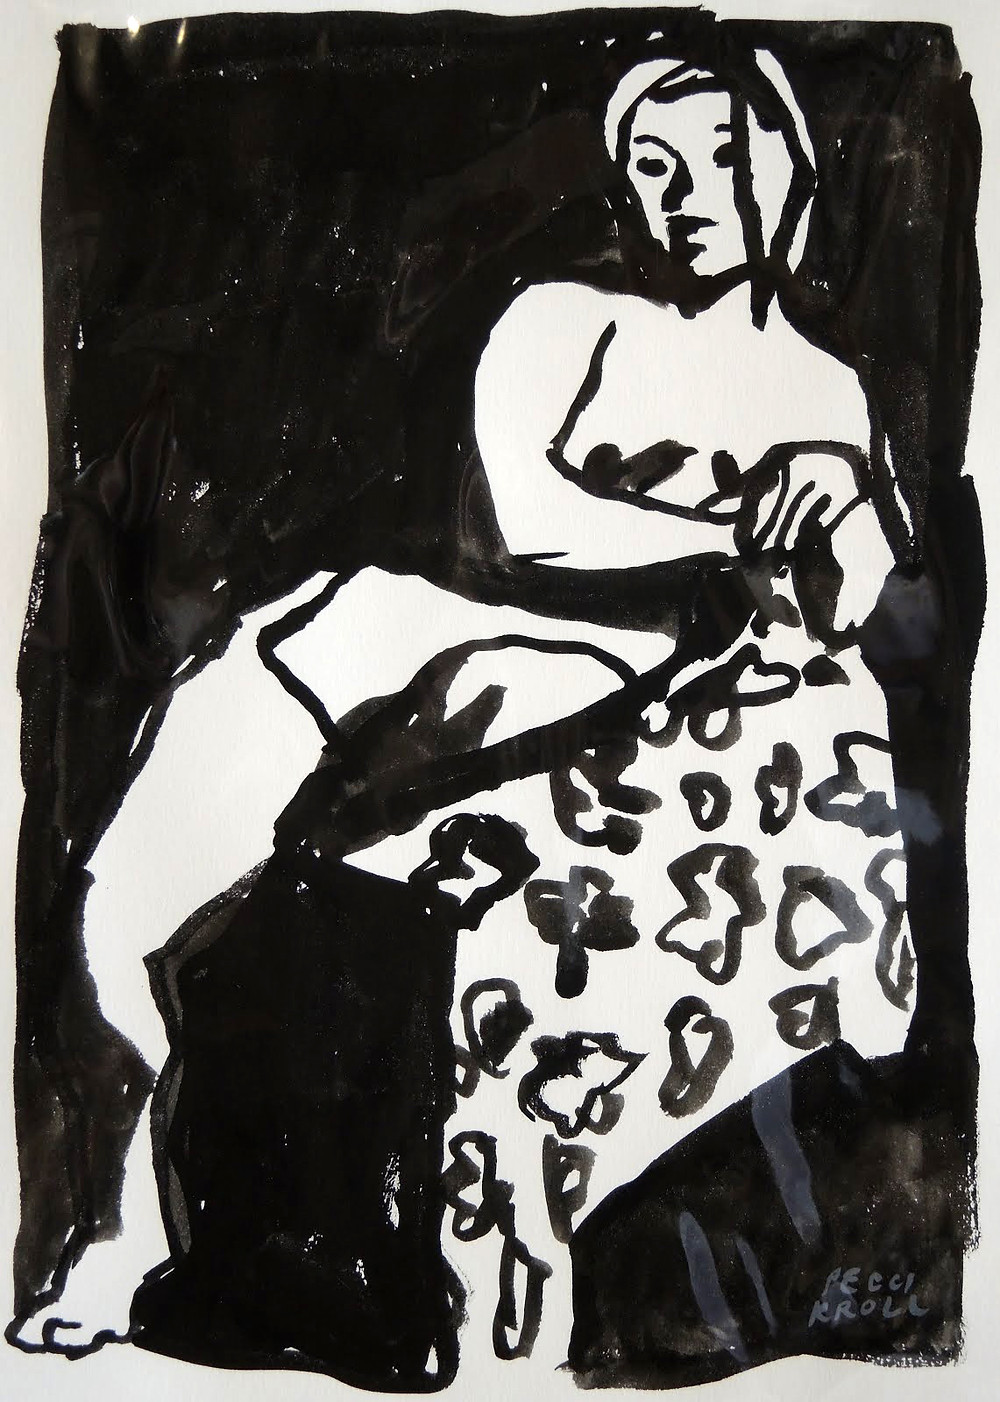 Peggi Kroll Roberts, nude figure black and white drawing